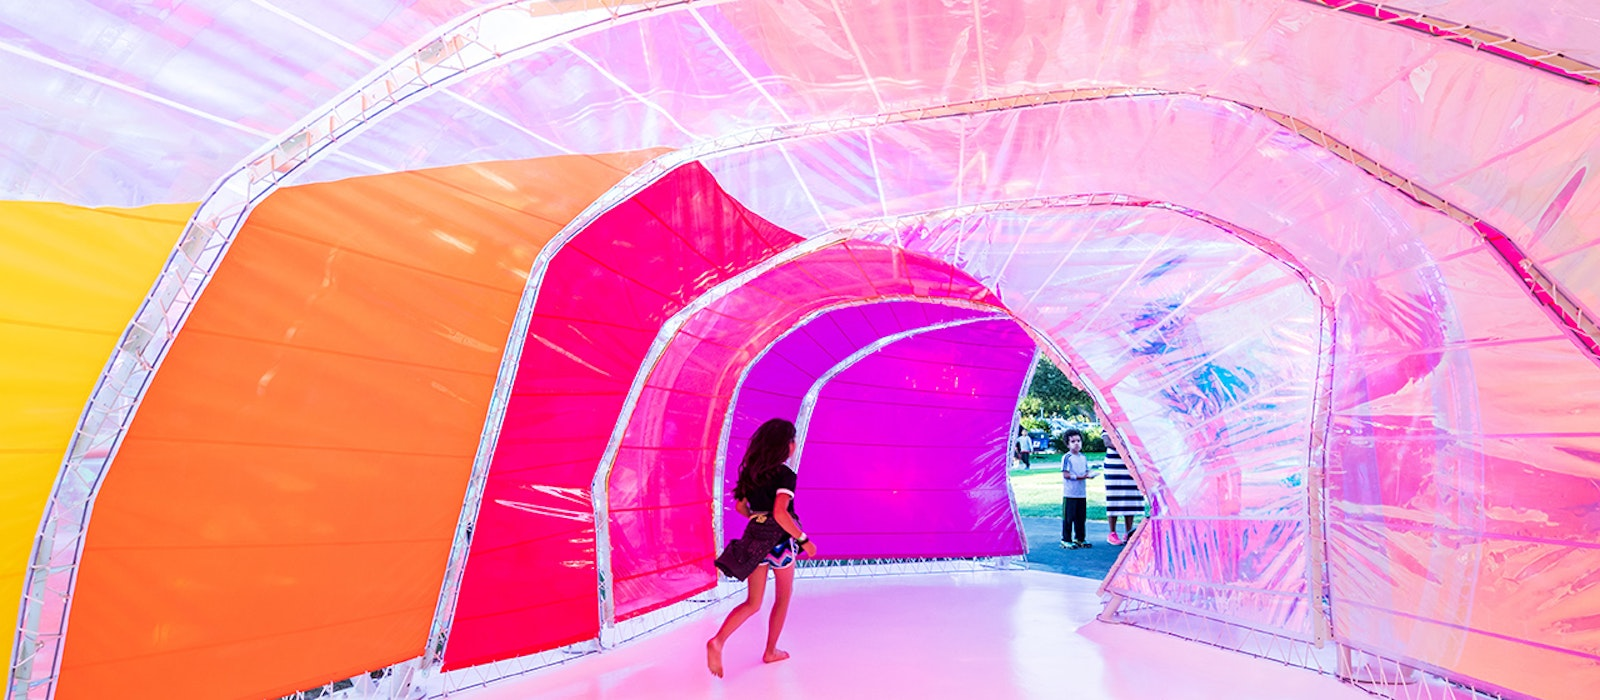 The Second Home Serpentine Pavilion: a whimsical addition to the Miracle Mile neighborhood